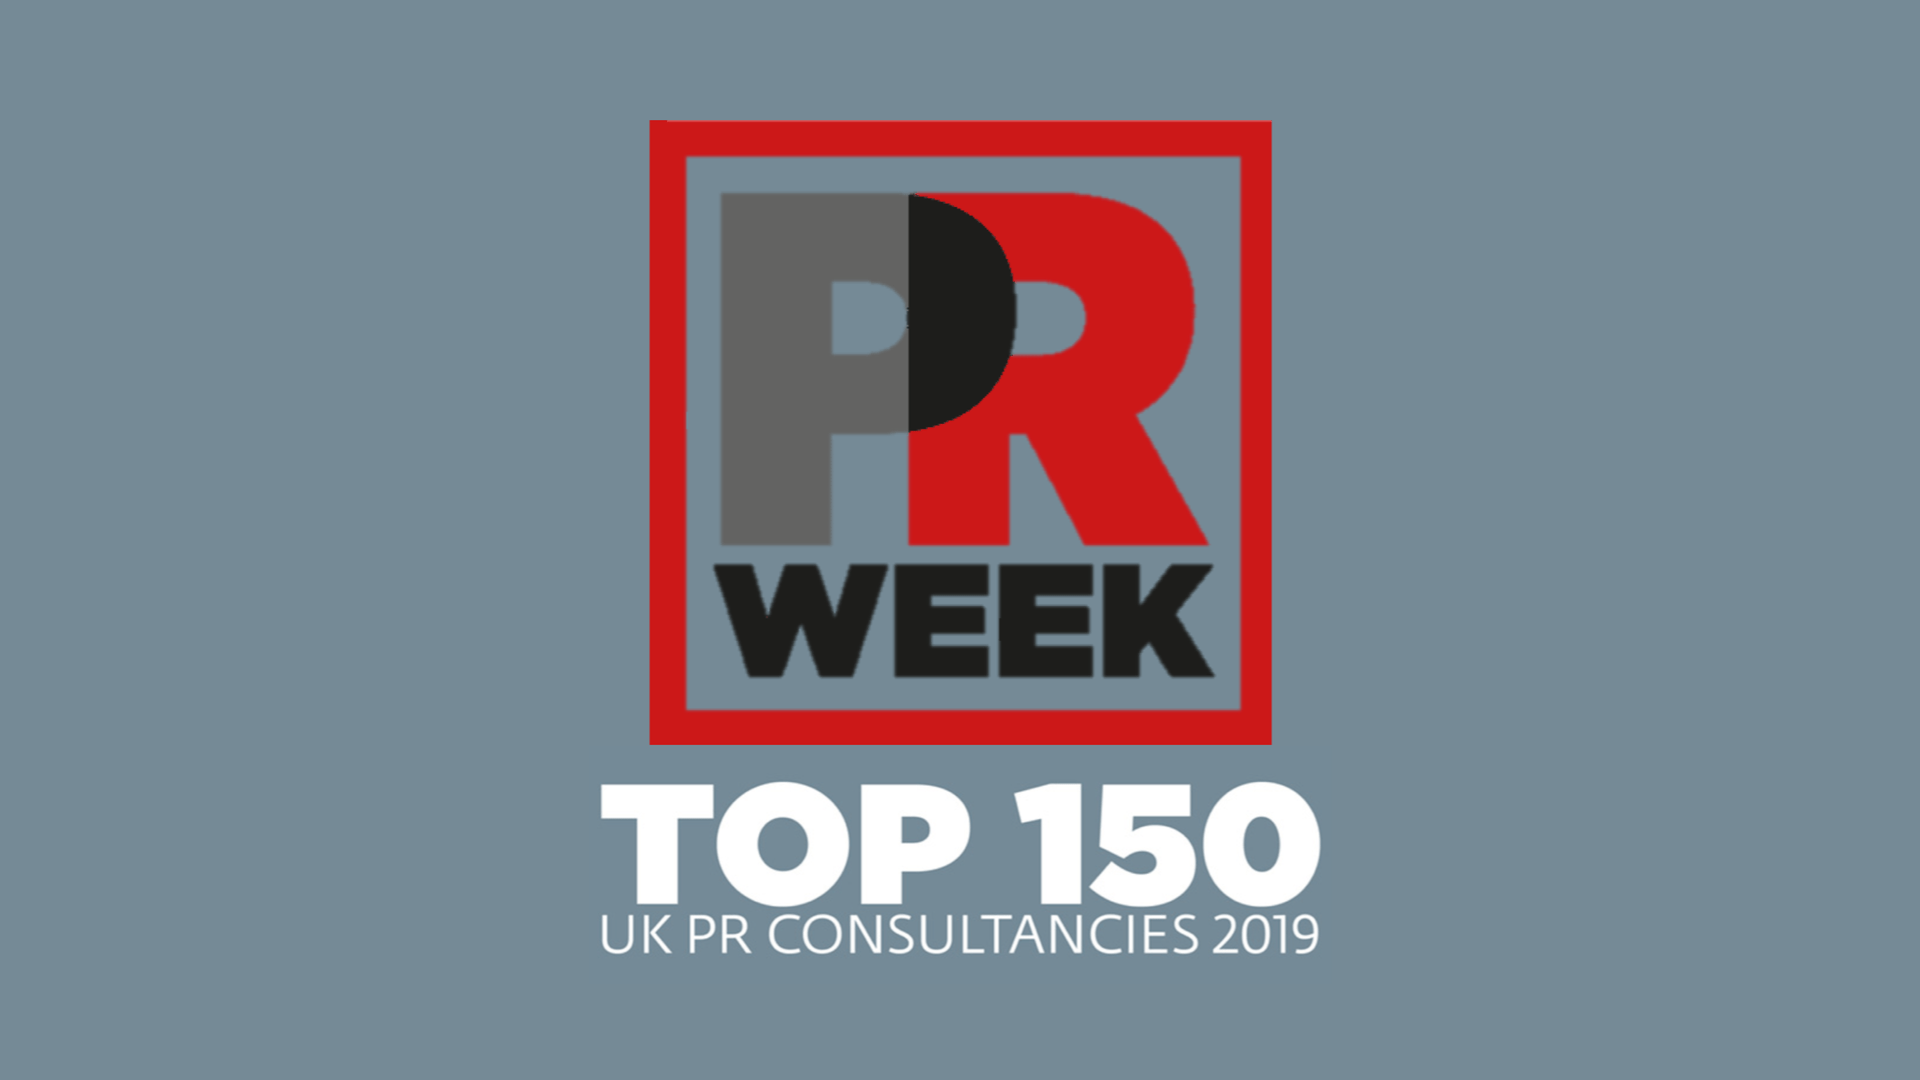 PR Week UK Top 150 PR Consultancies